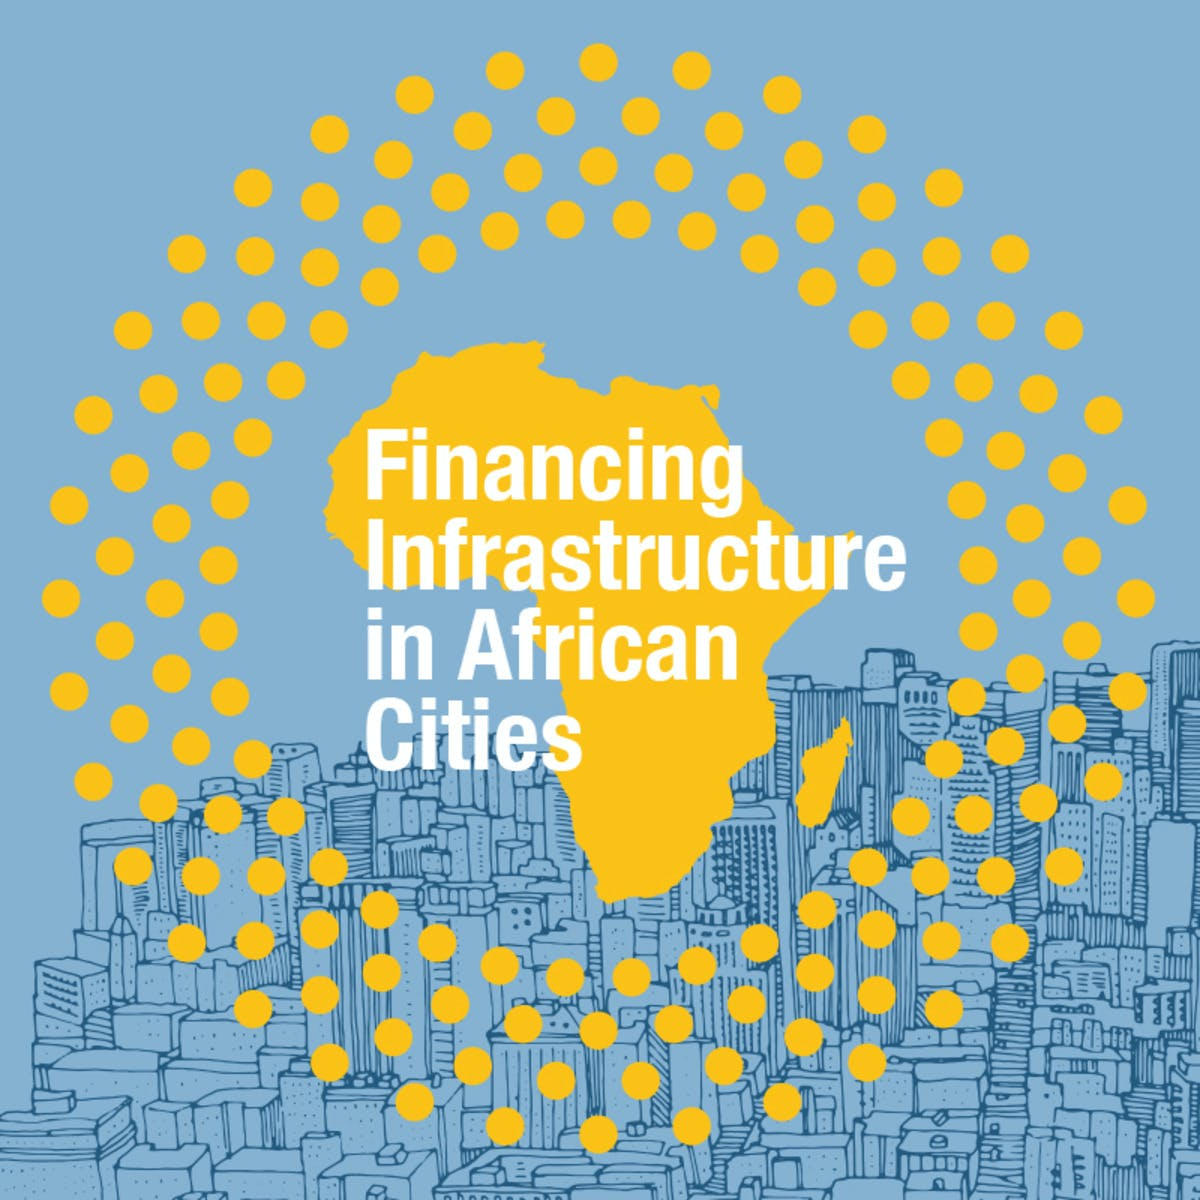 Financing Infrastructure in African Cities